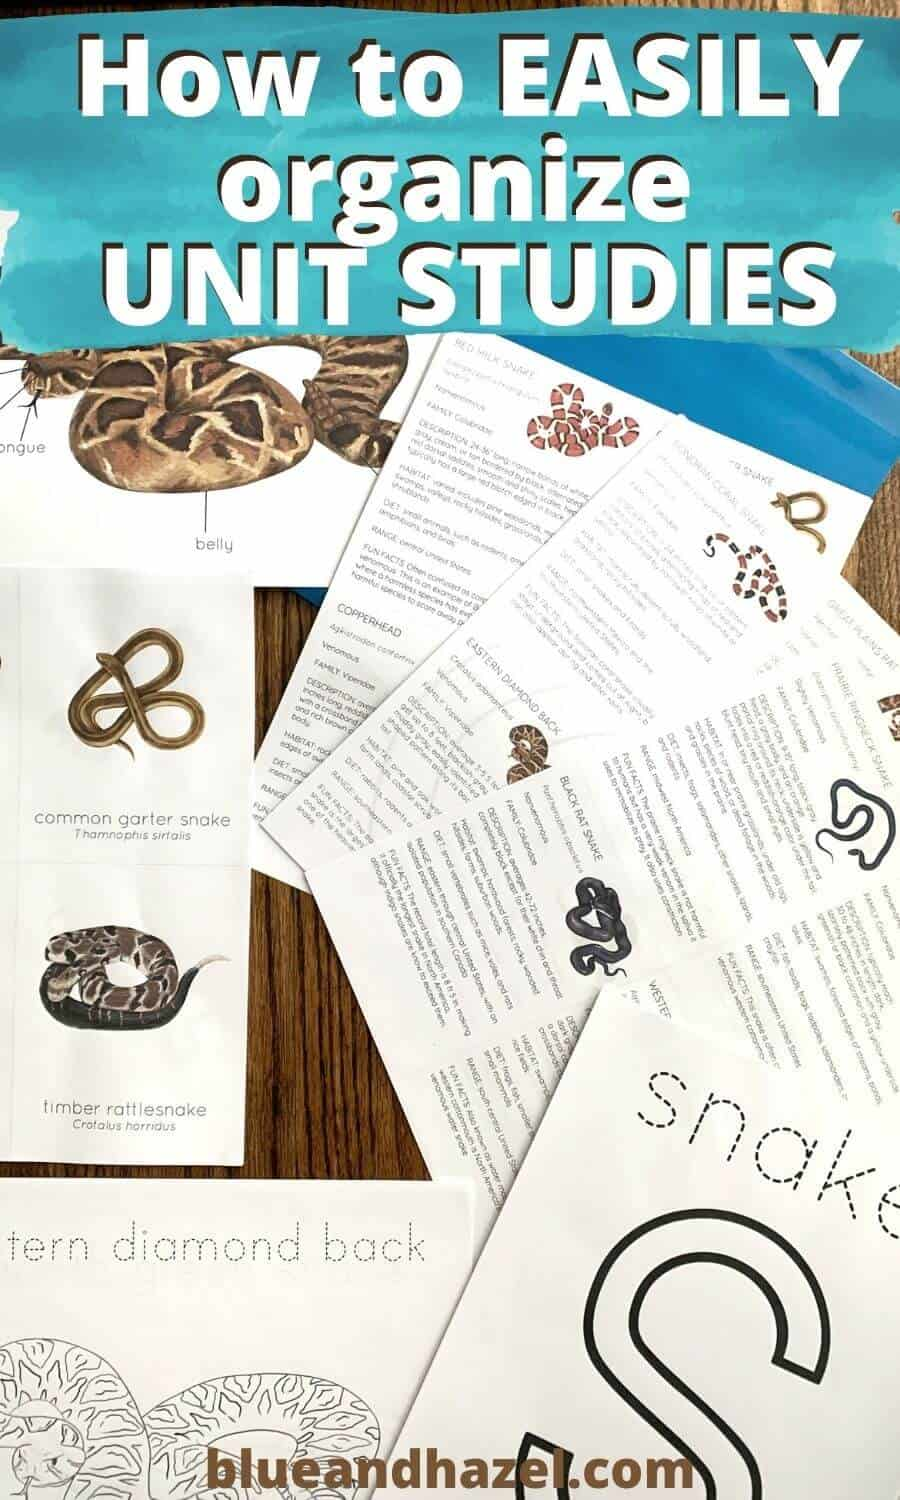 How to store and organize print outs for ANY unit study, like this mini snake unit study here by StephHathawayDesigns on Etsy.